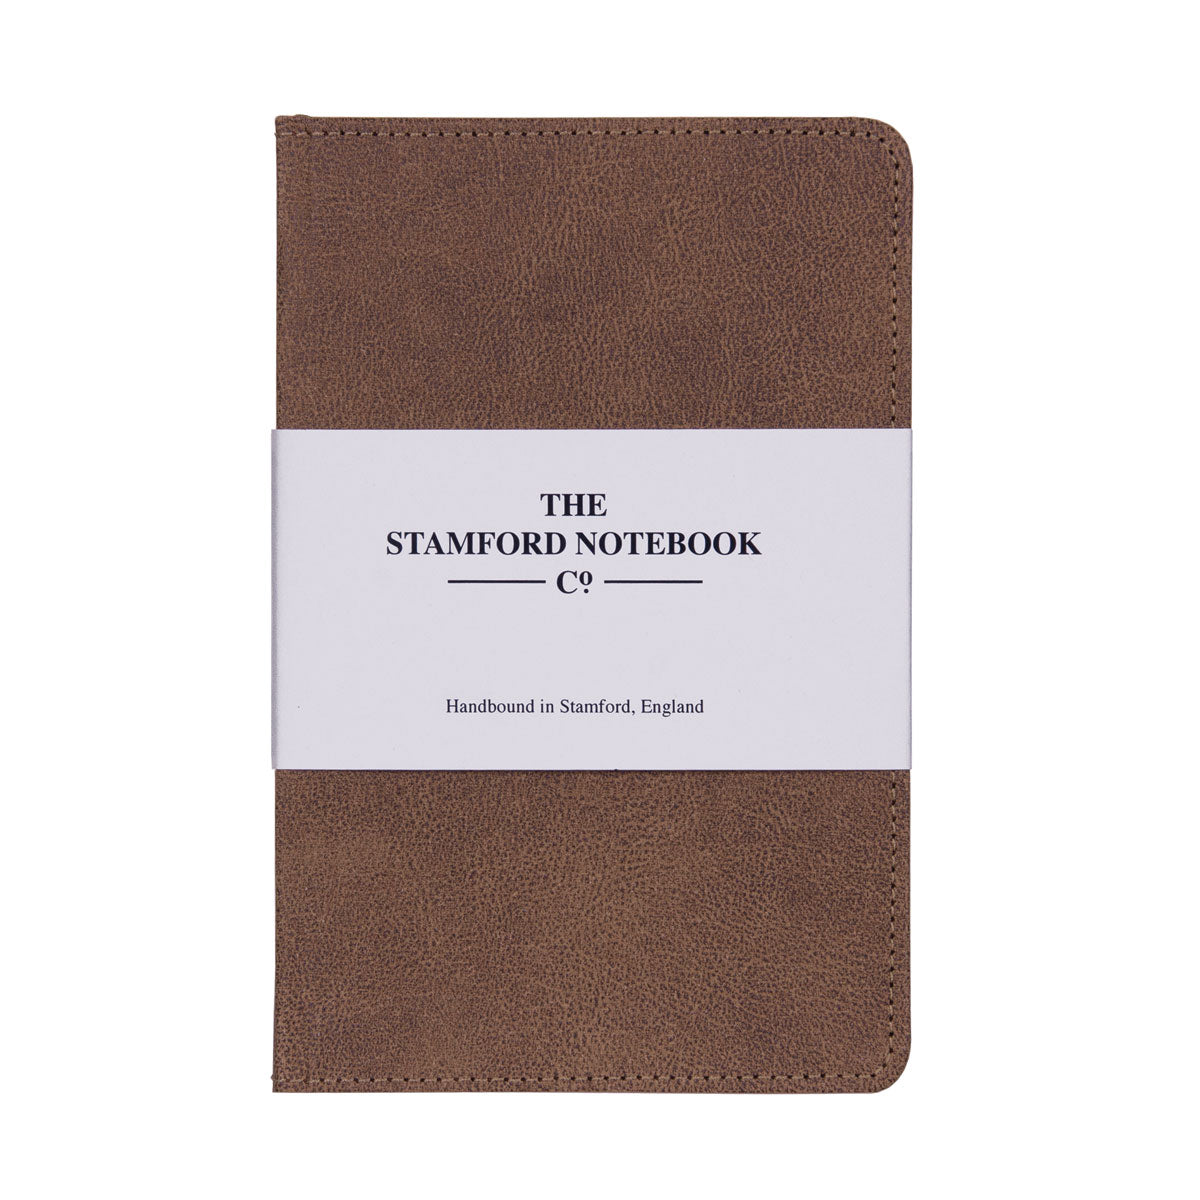 Vintage stitched Recycled Leather Notebook in Chestnut